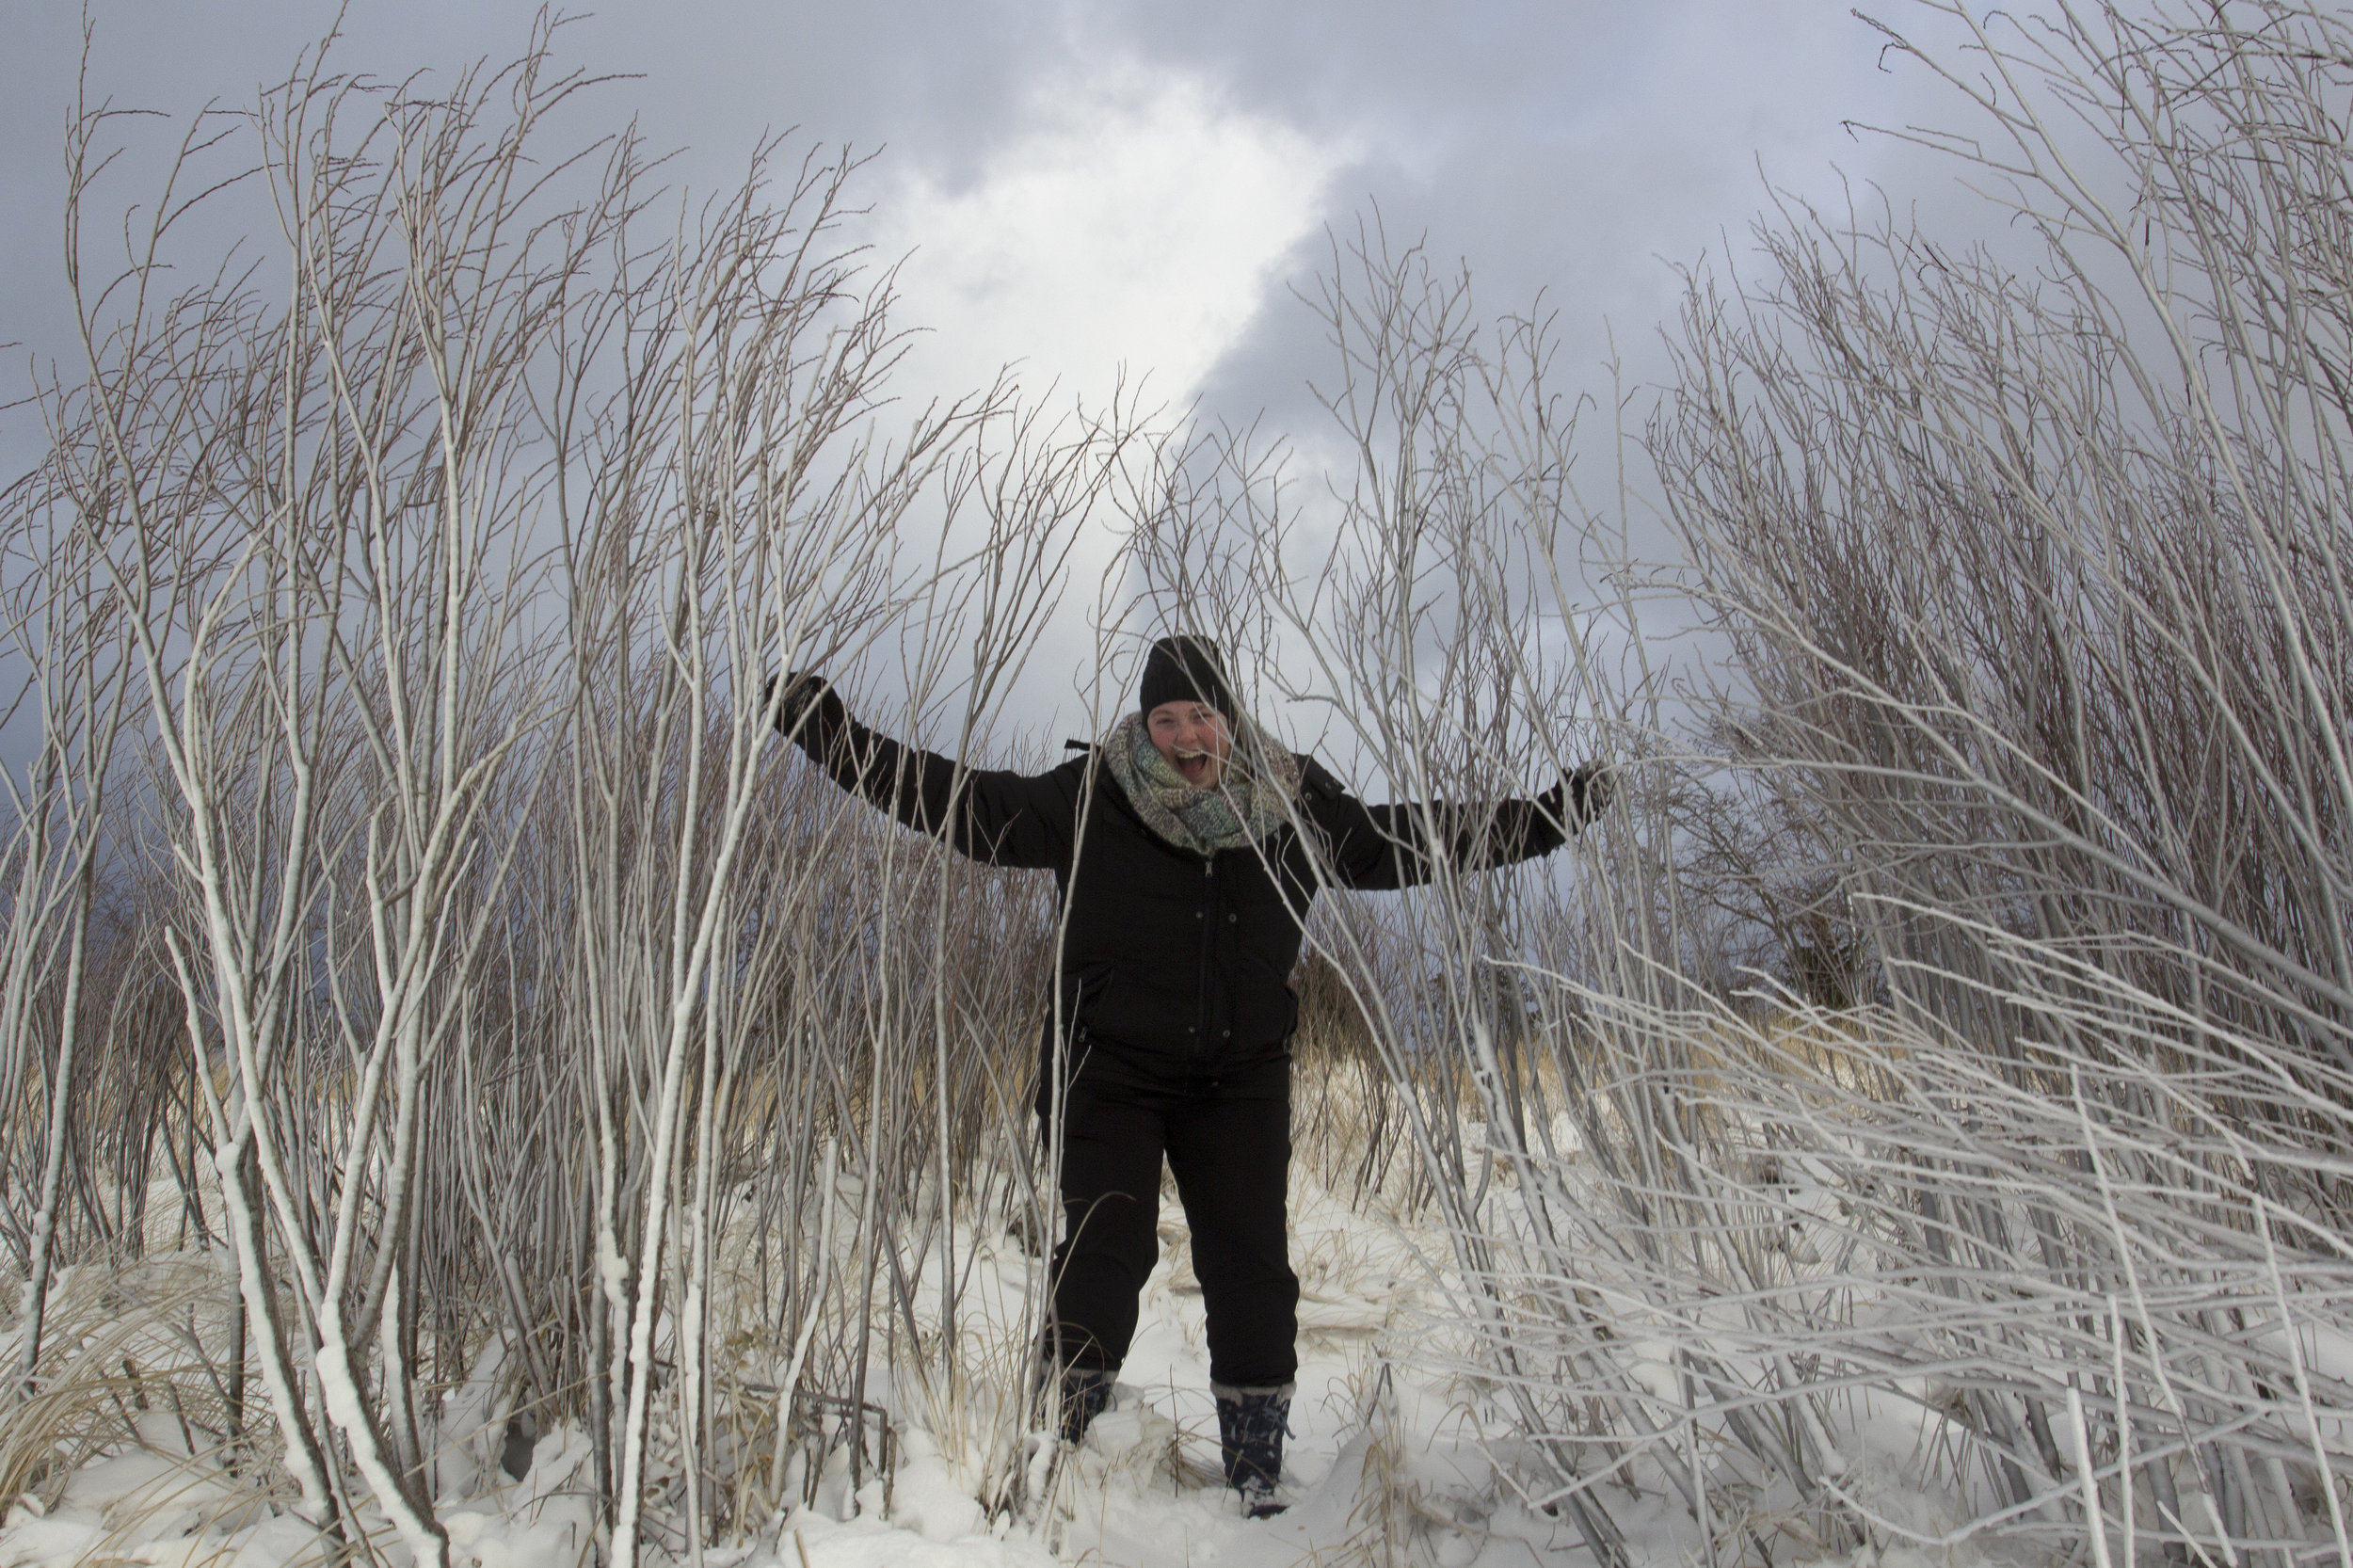 Keegan scrambles through ice covered grasses.